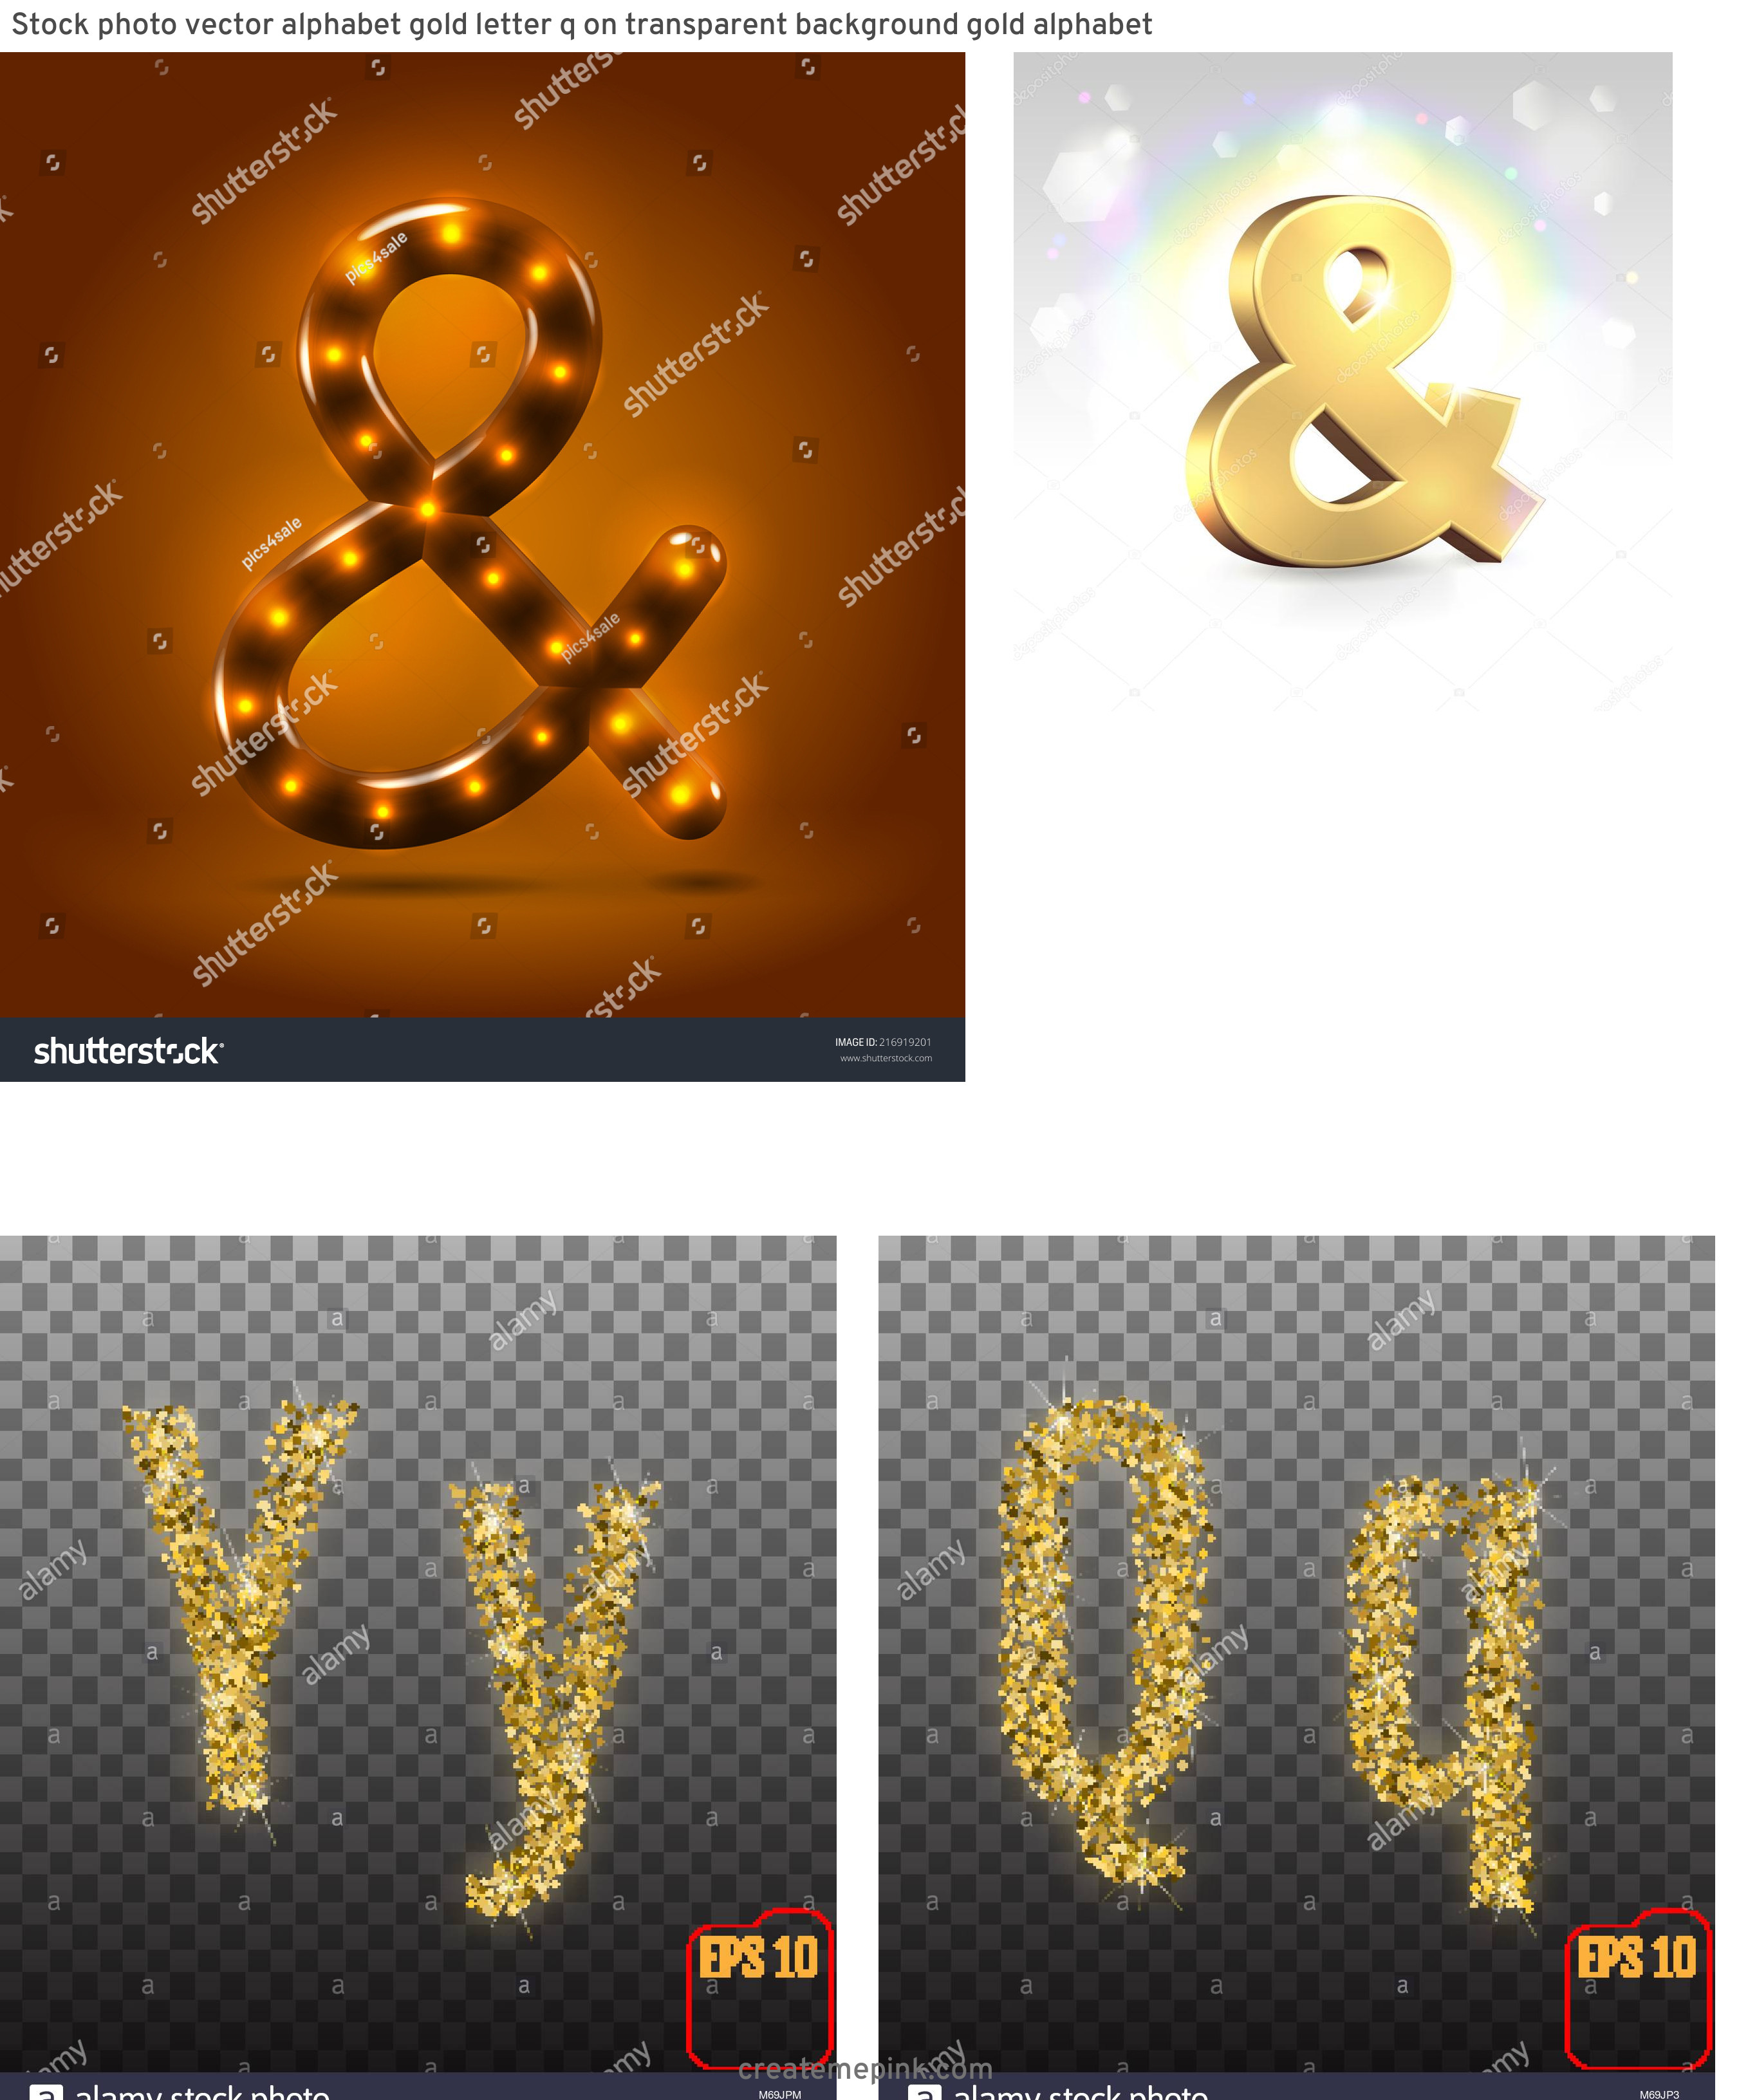 Lighted Ampersand Vector: Stock Photo Vector Alphabet Gold Letter Q On Transparent Background Gold Alphabet